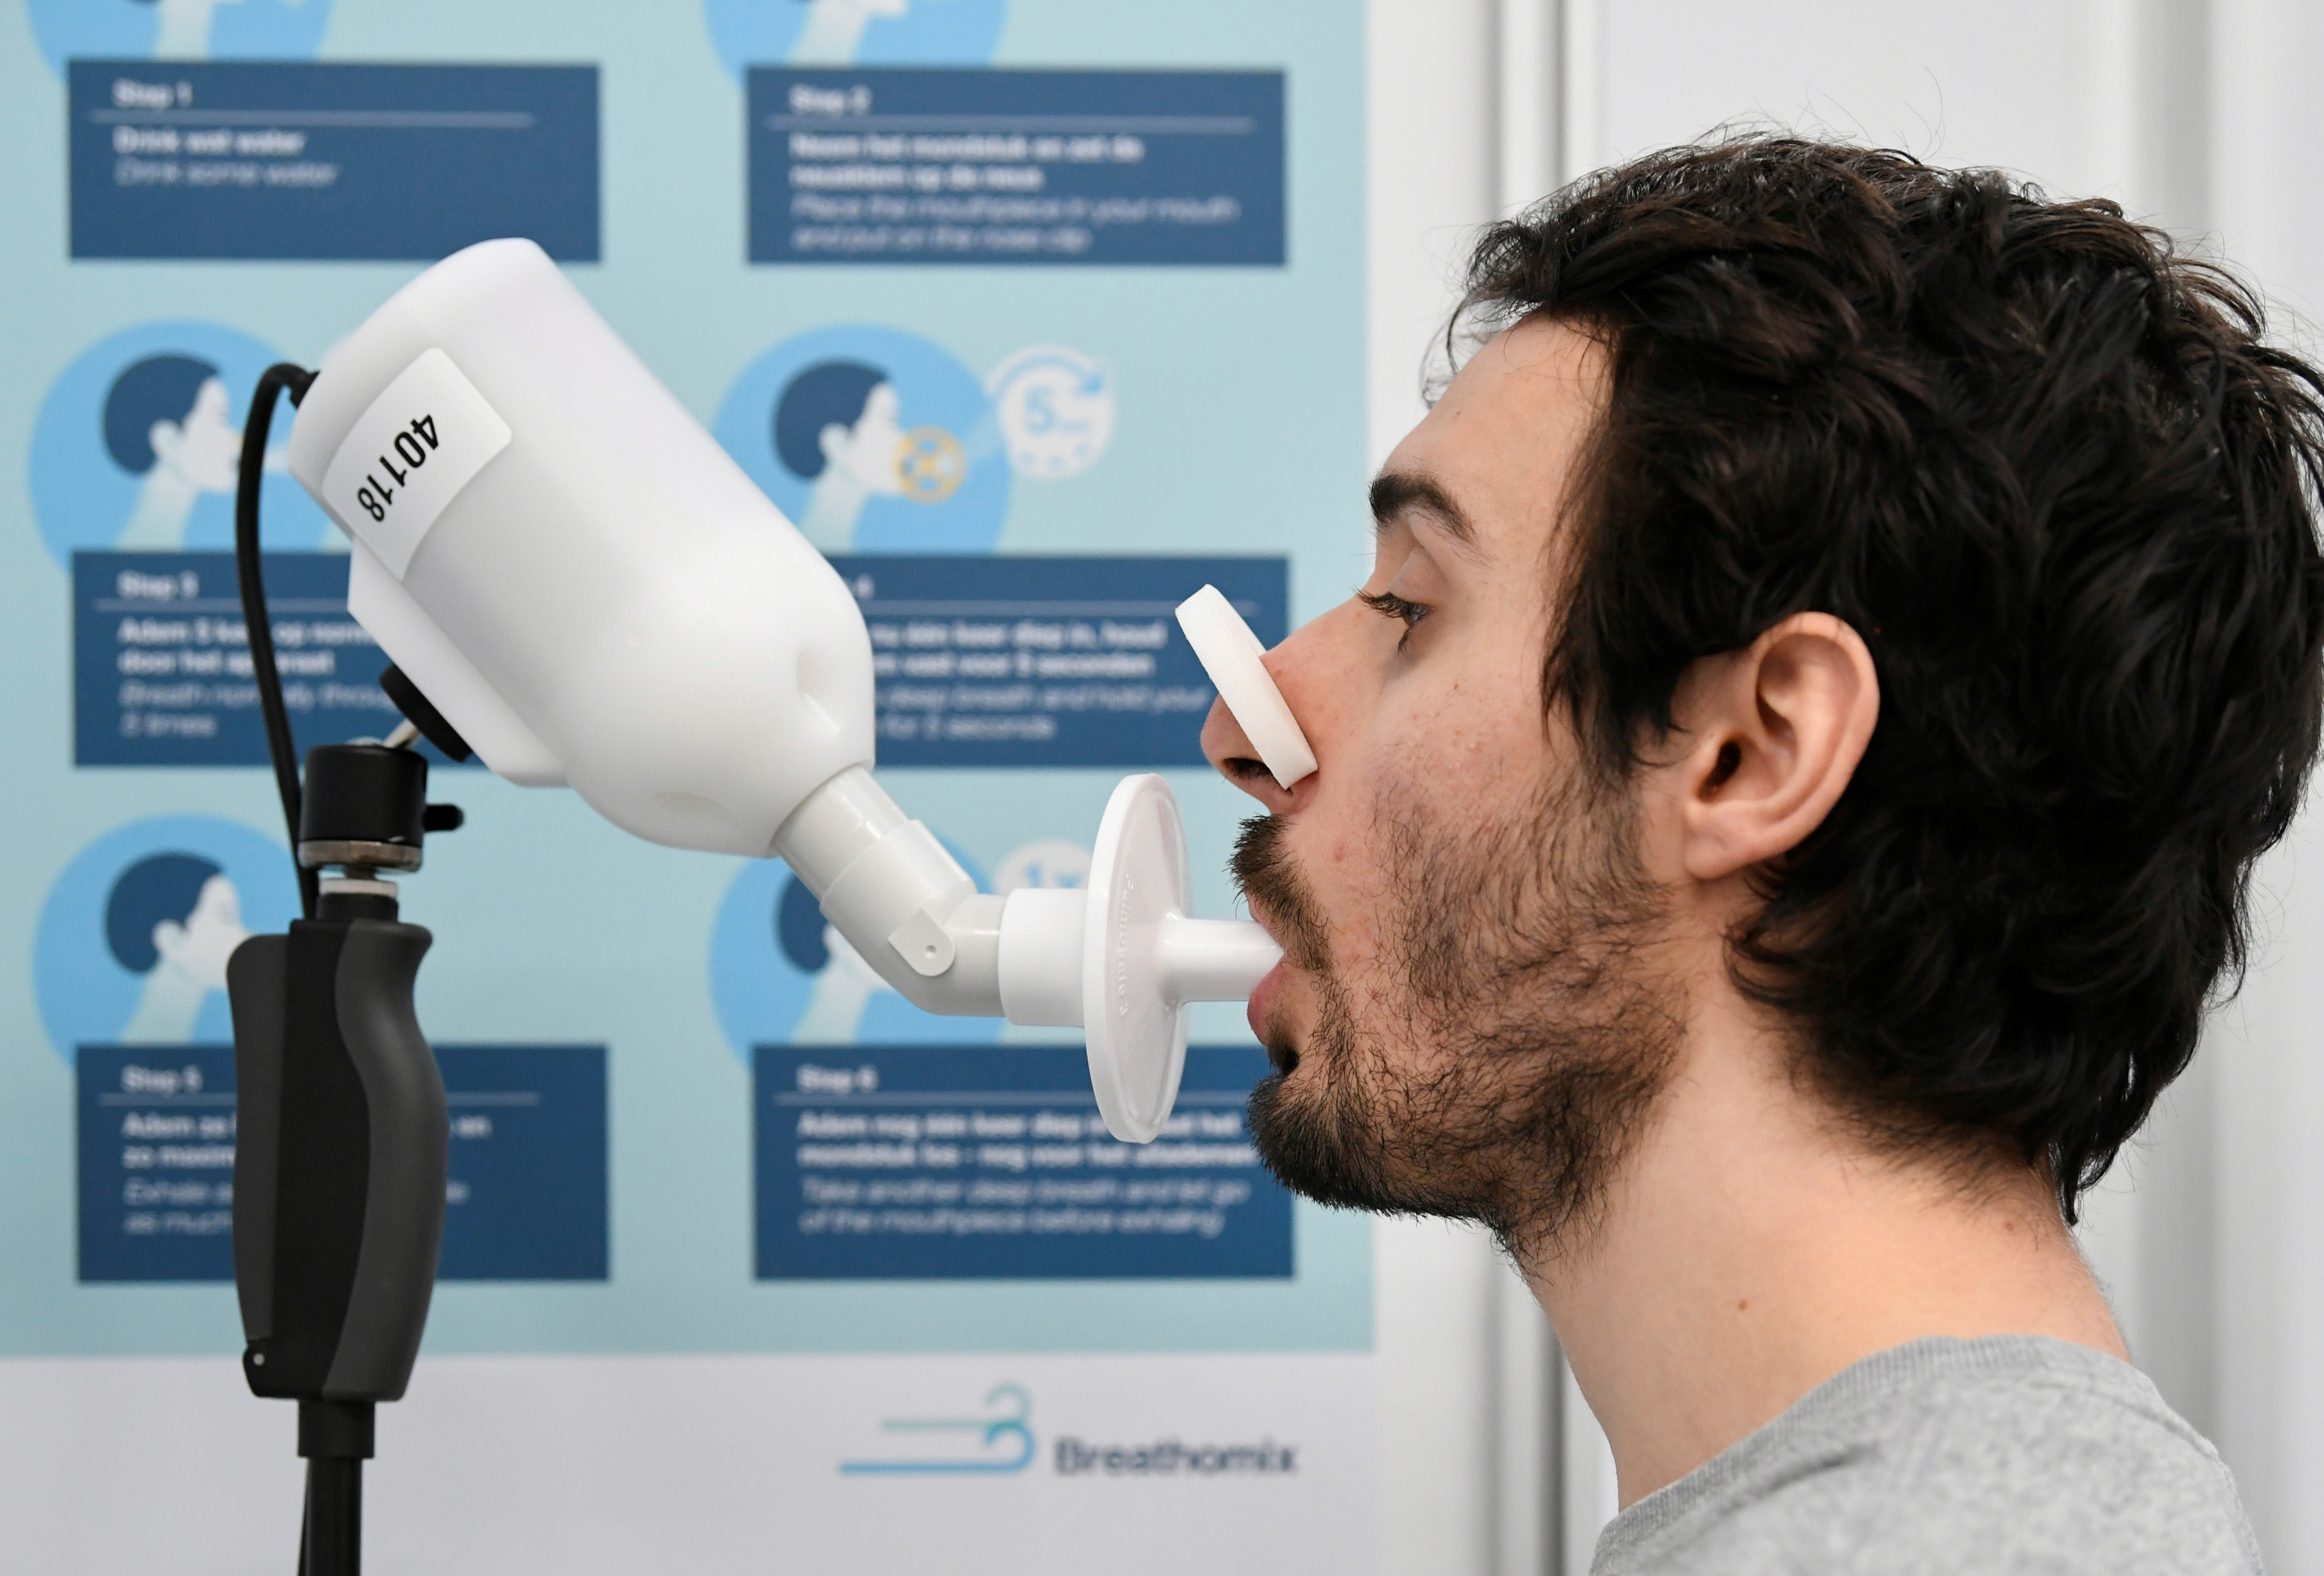 A man demonstrates how a Covid-19 breath test works as the coronavirus disease (COVID-19) testing facilities in the Netherlands will in the coming months be equipped with breath tests capable of giving immediate results, to speed up testing and make it less intrusive in Amsterdam, Netherlands February 1, 2021. Picture taken February 1, 2021. REUTERS/Piroschka van de Wouw